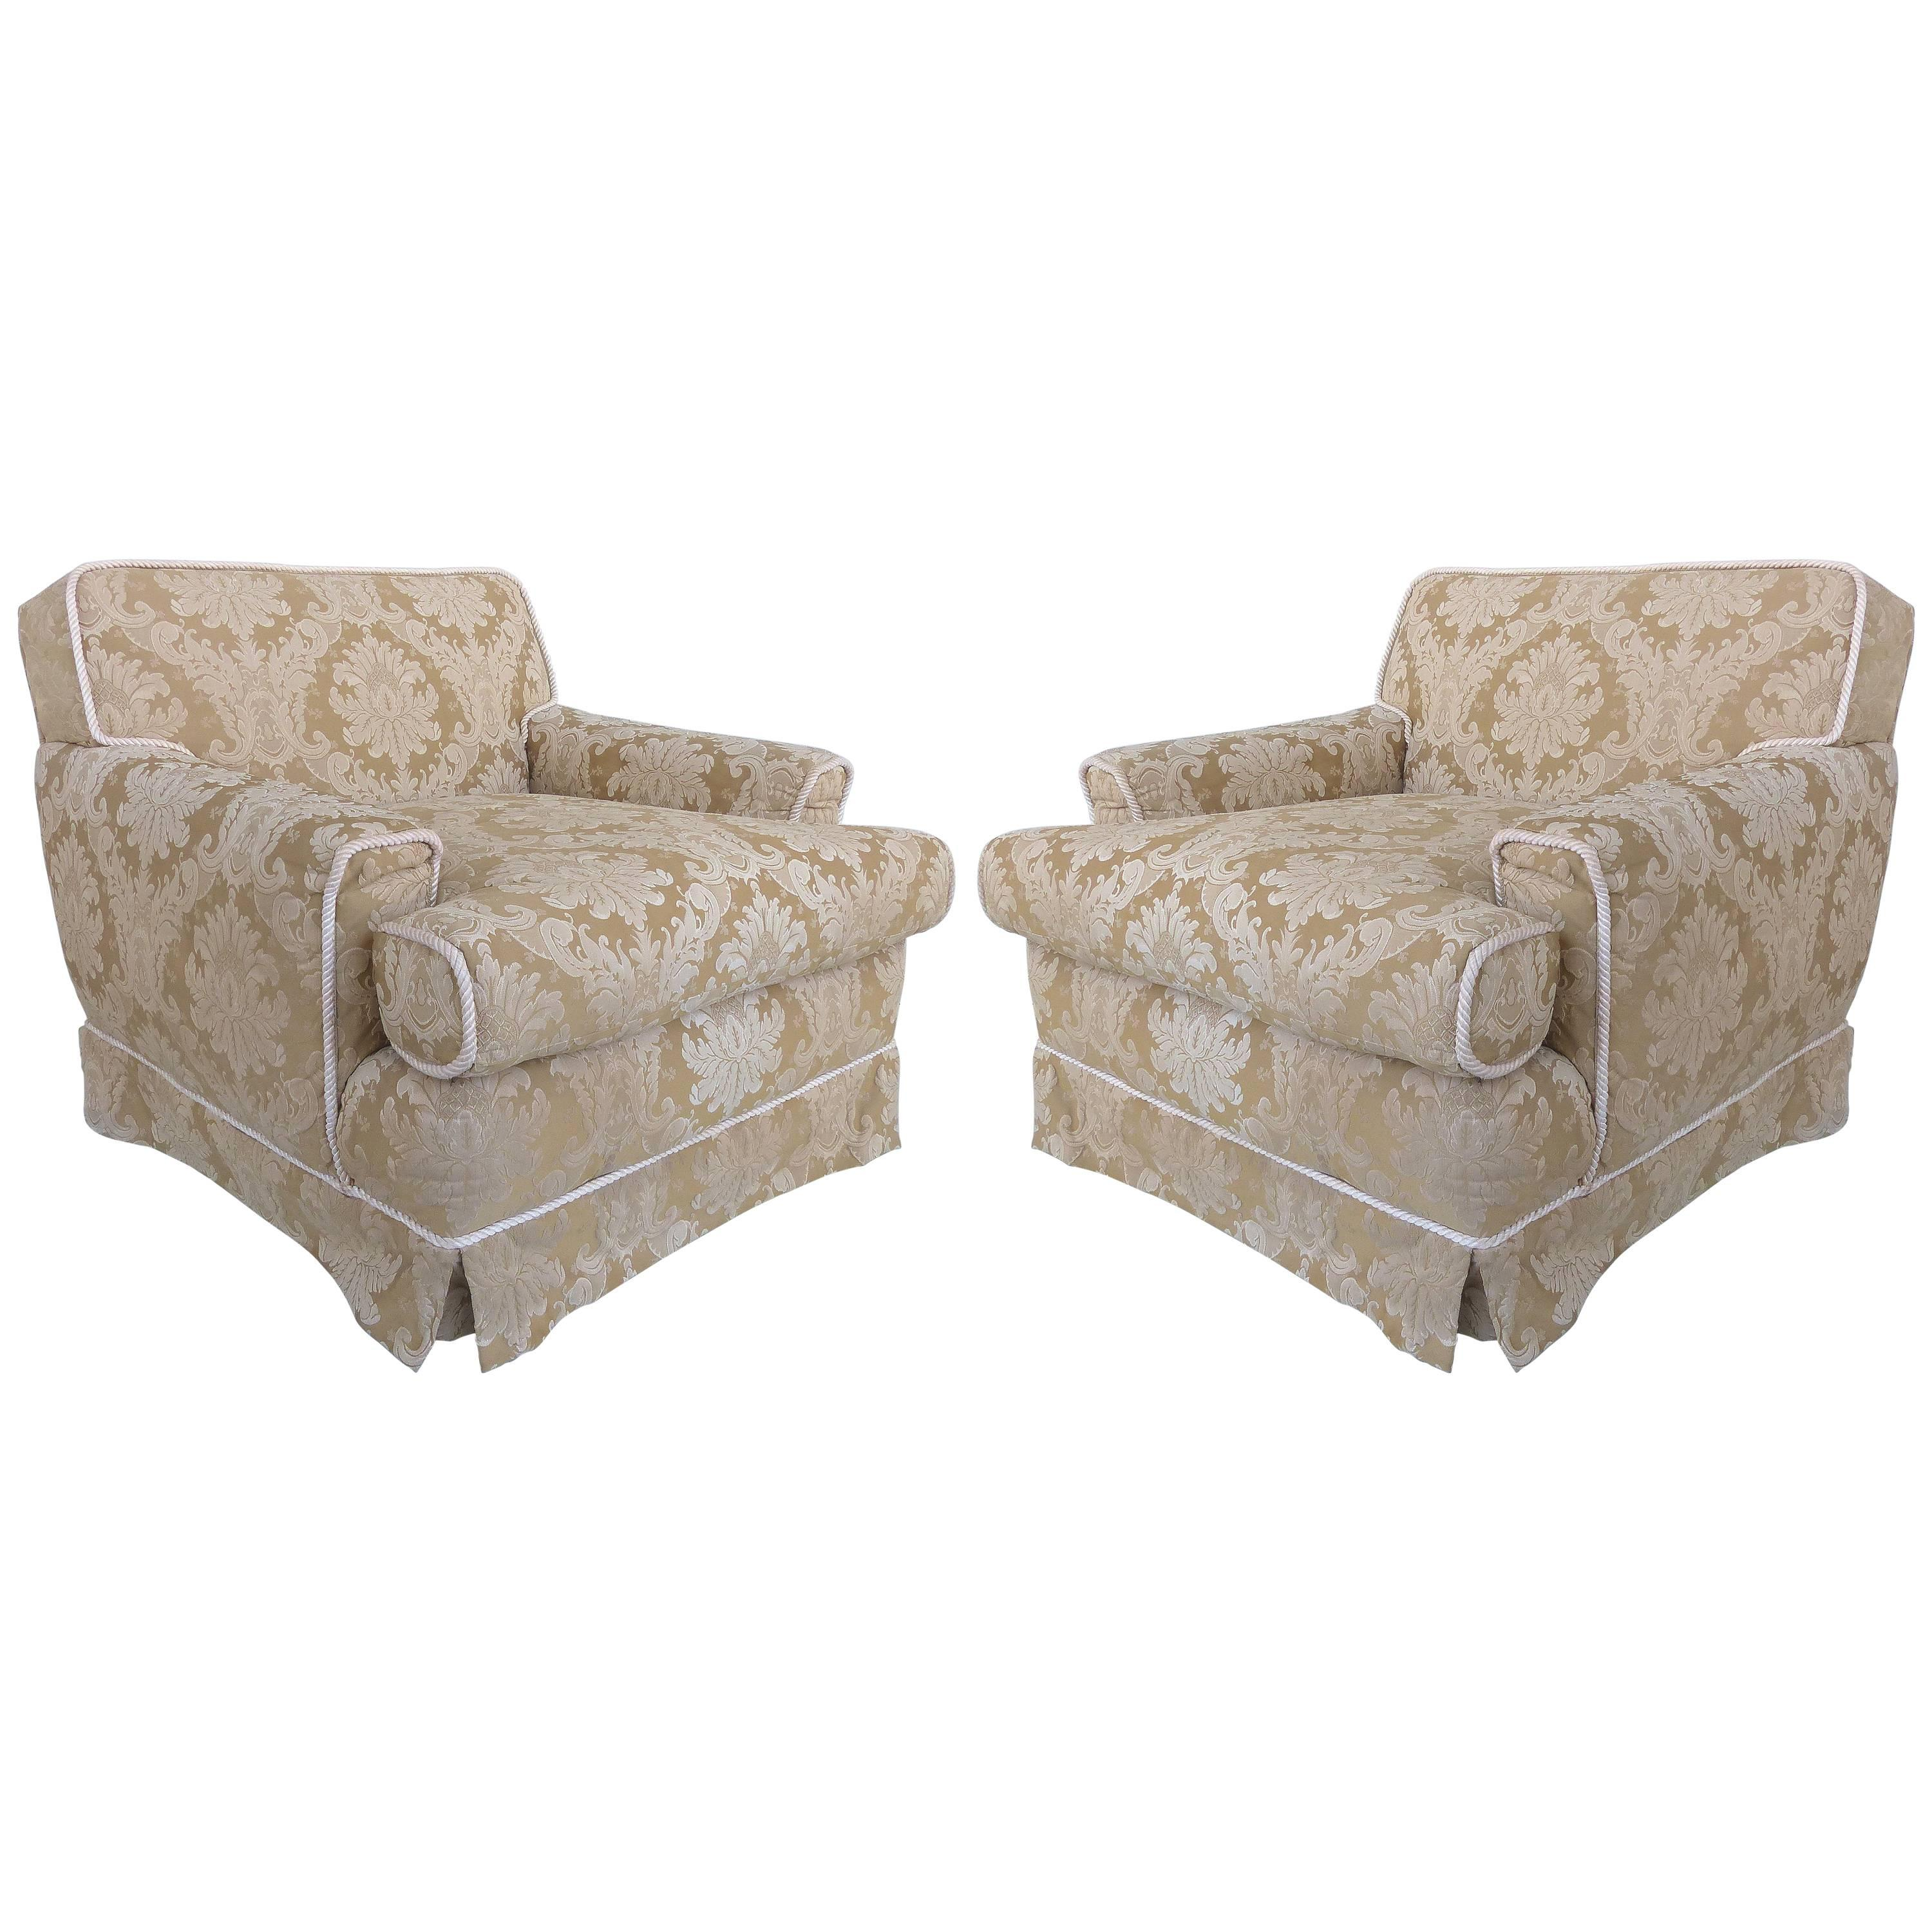 Damask Club Chairs With Down Filled Cushions, Skirted Bottom And Rope Trim